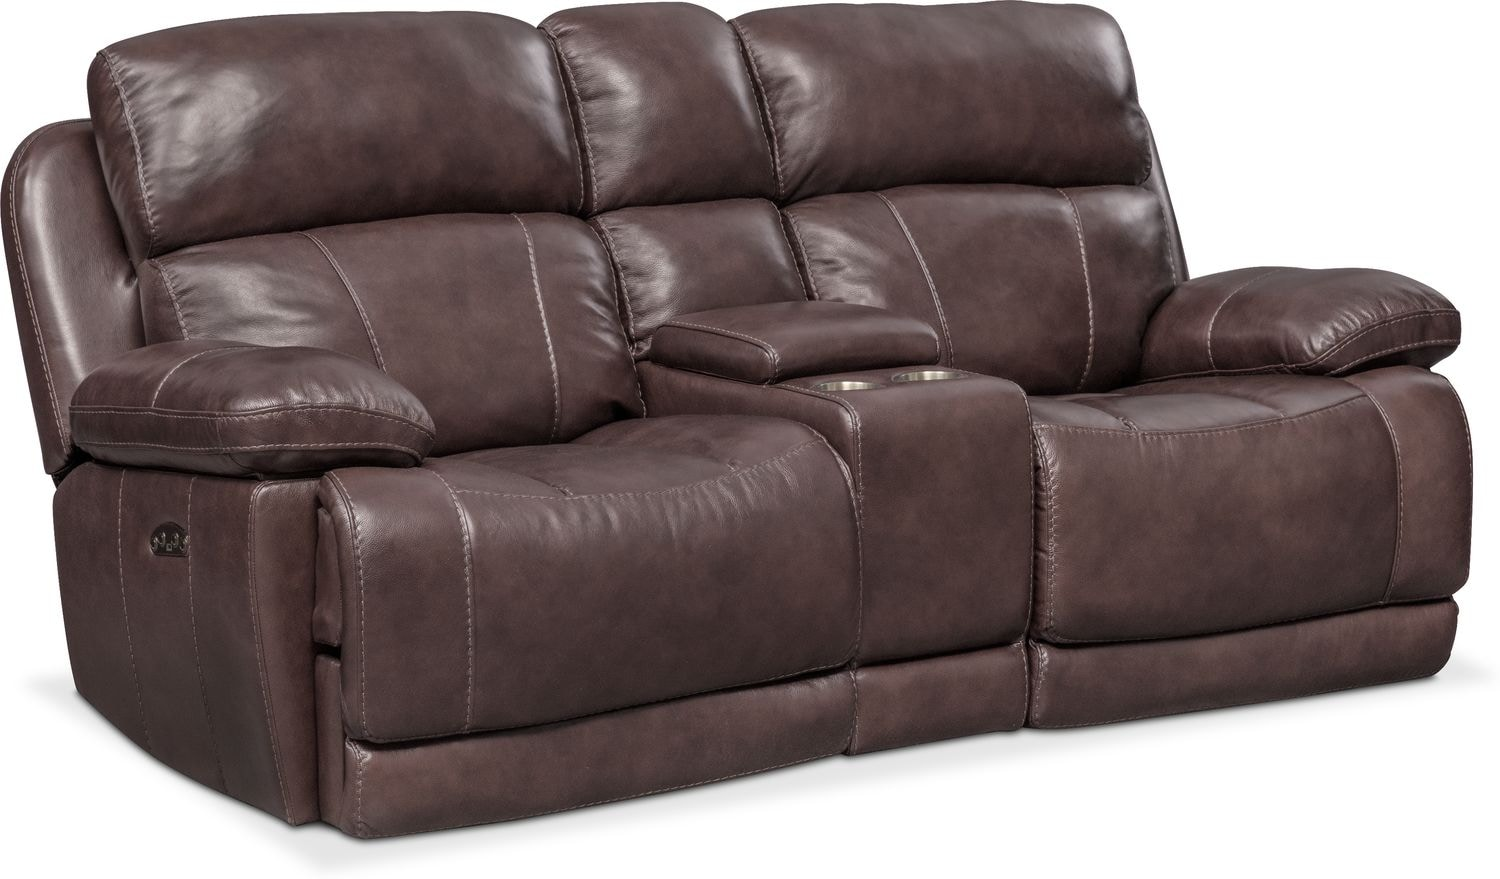 Living Room Furniture - Monte Carlo Dual Power Reclining Loveseat